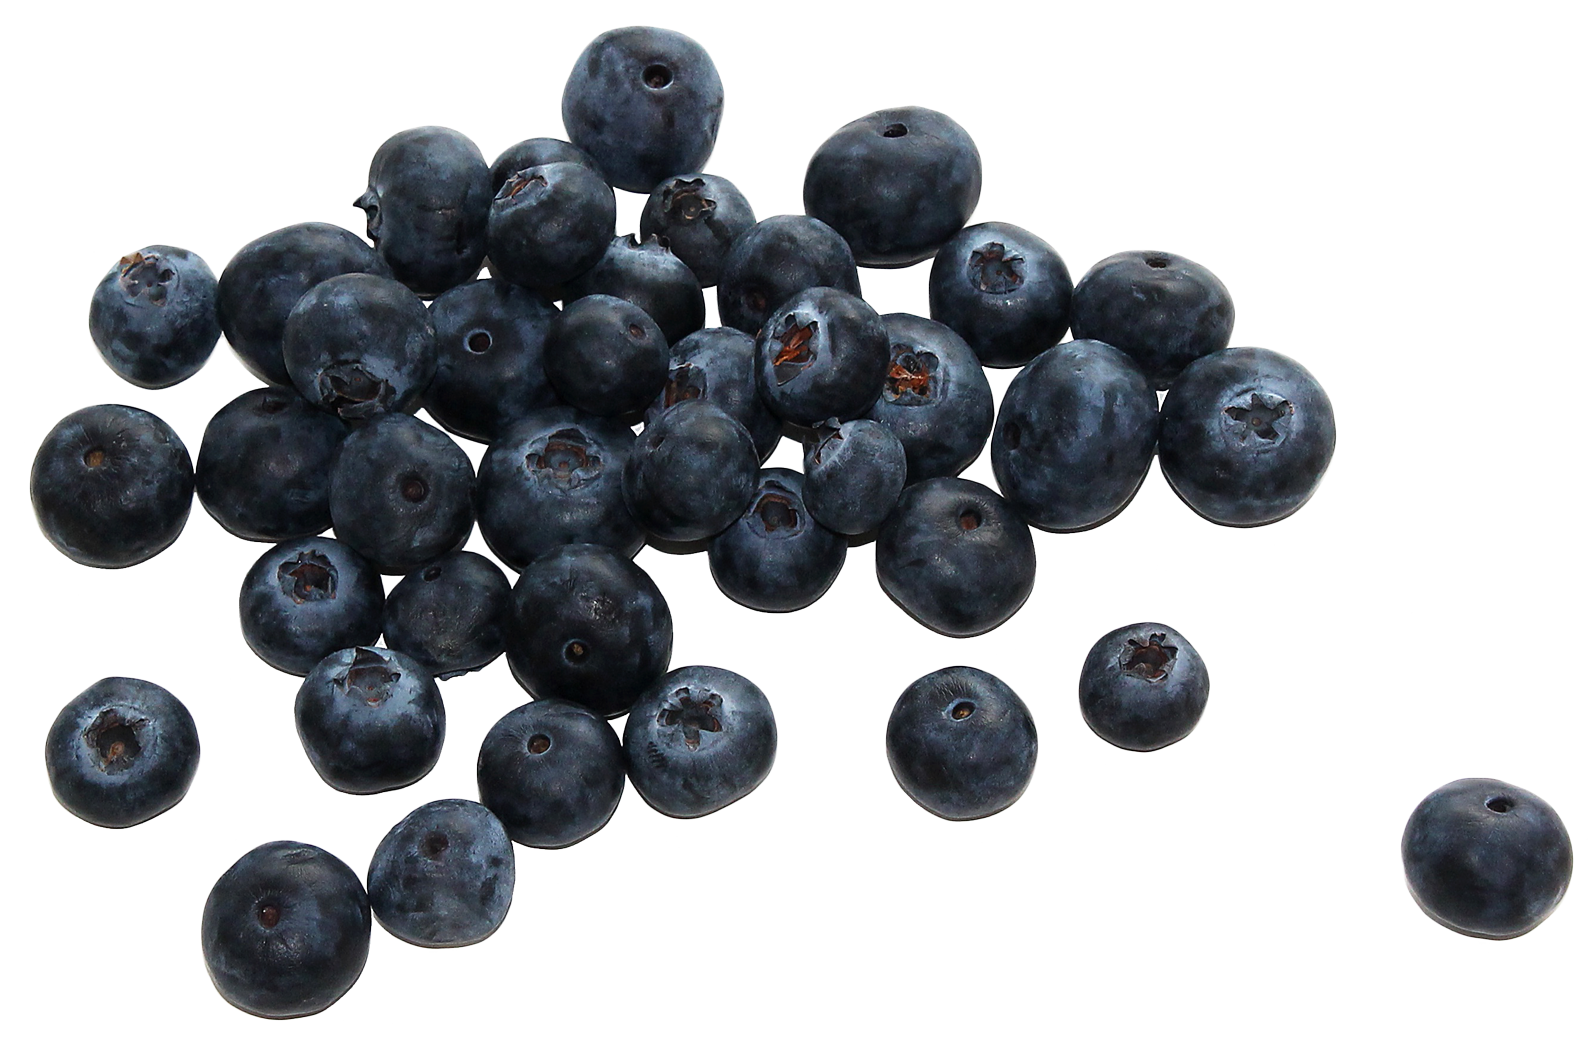 Asymmetric blueberry